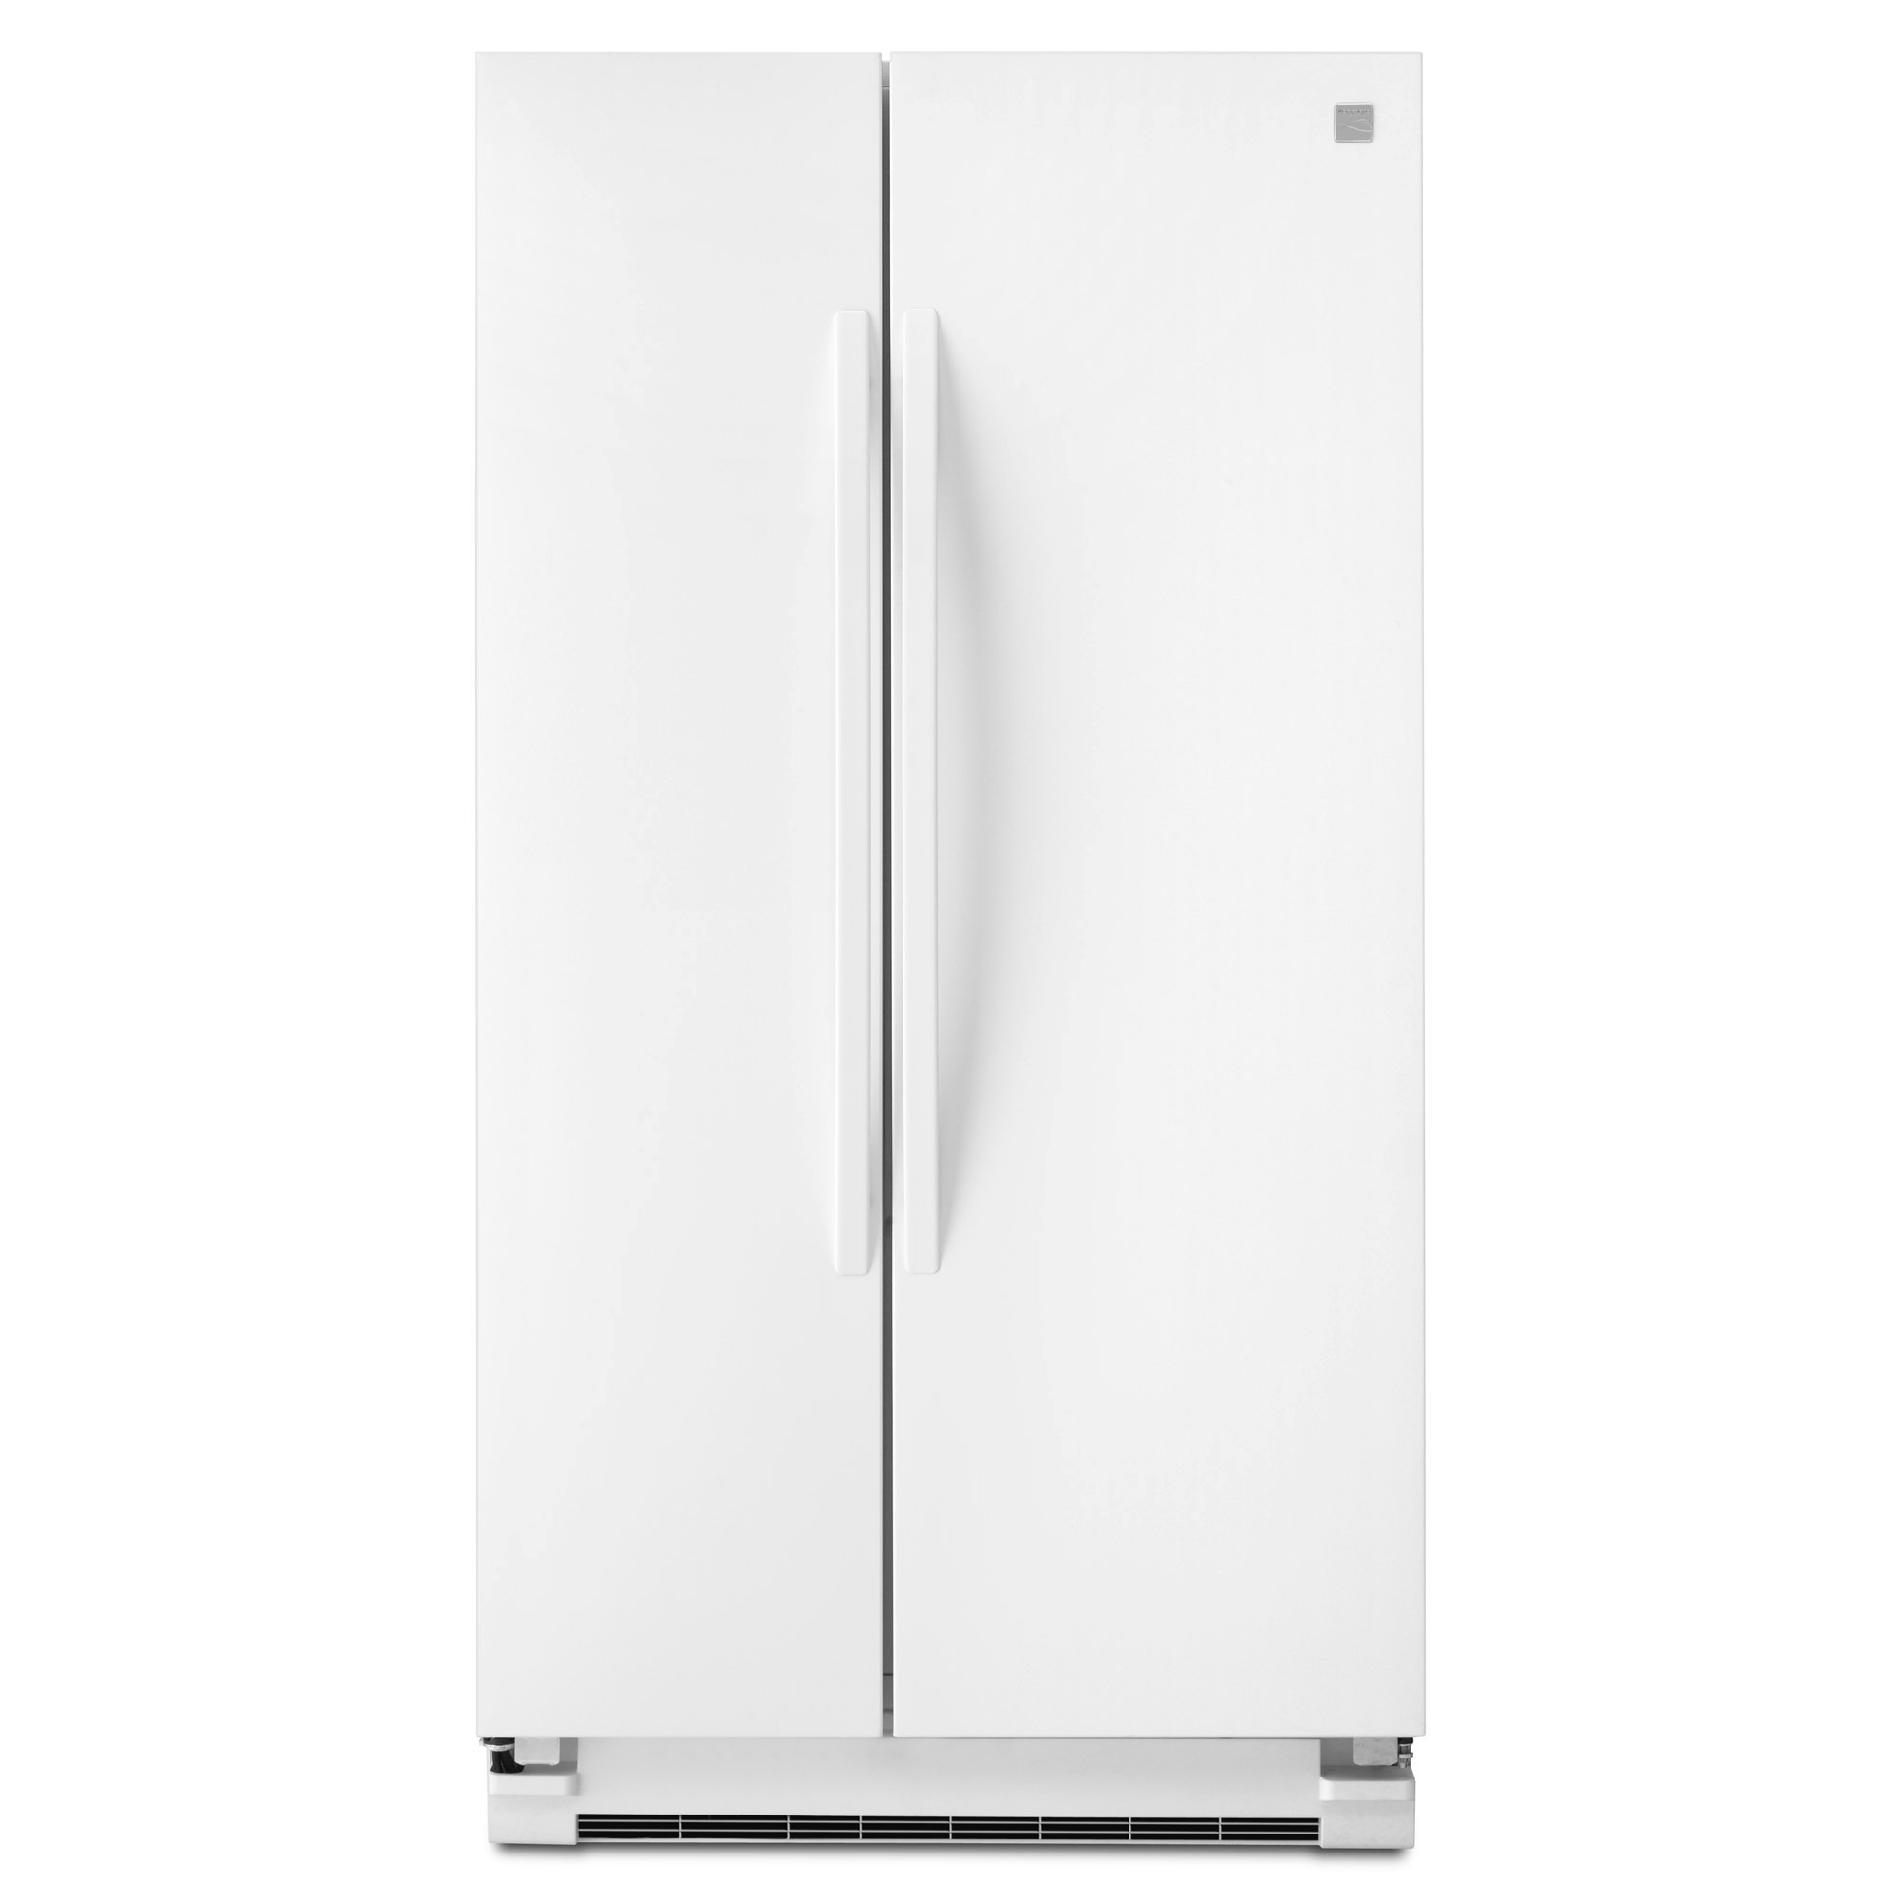 41152-25-cu-ft-Side-by-Side-Refrigerator-White